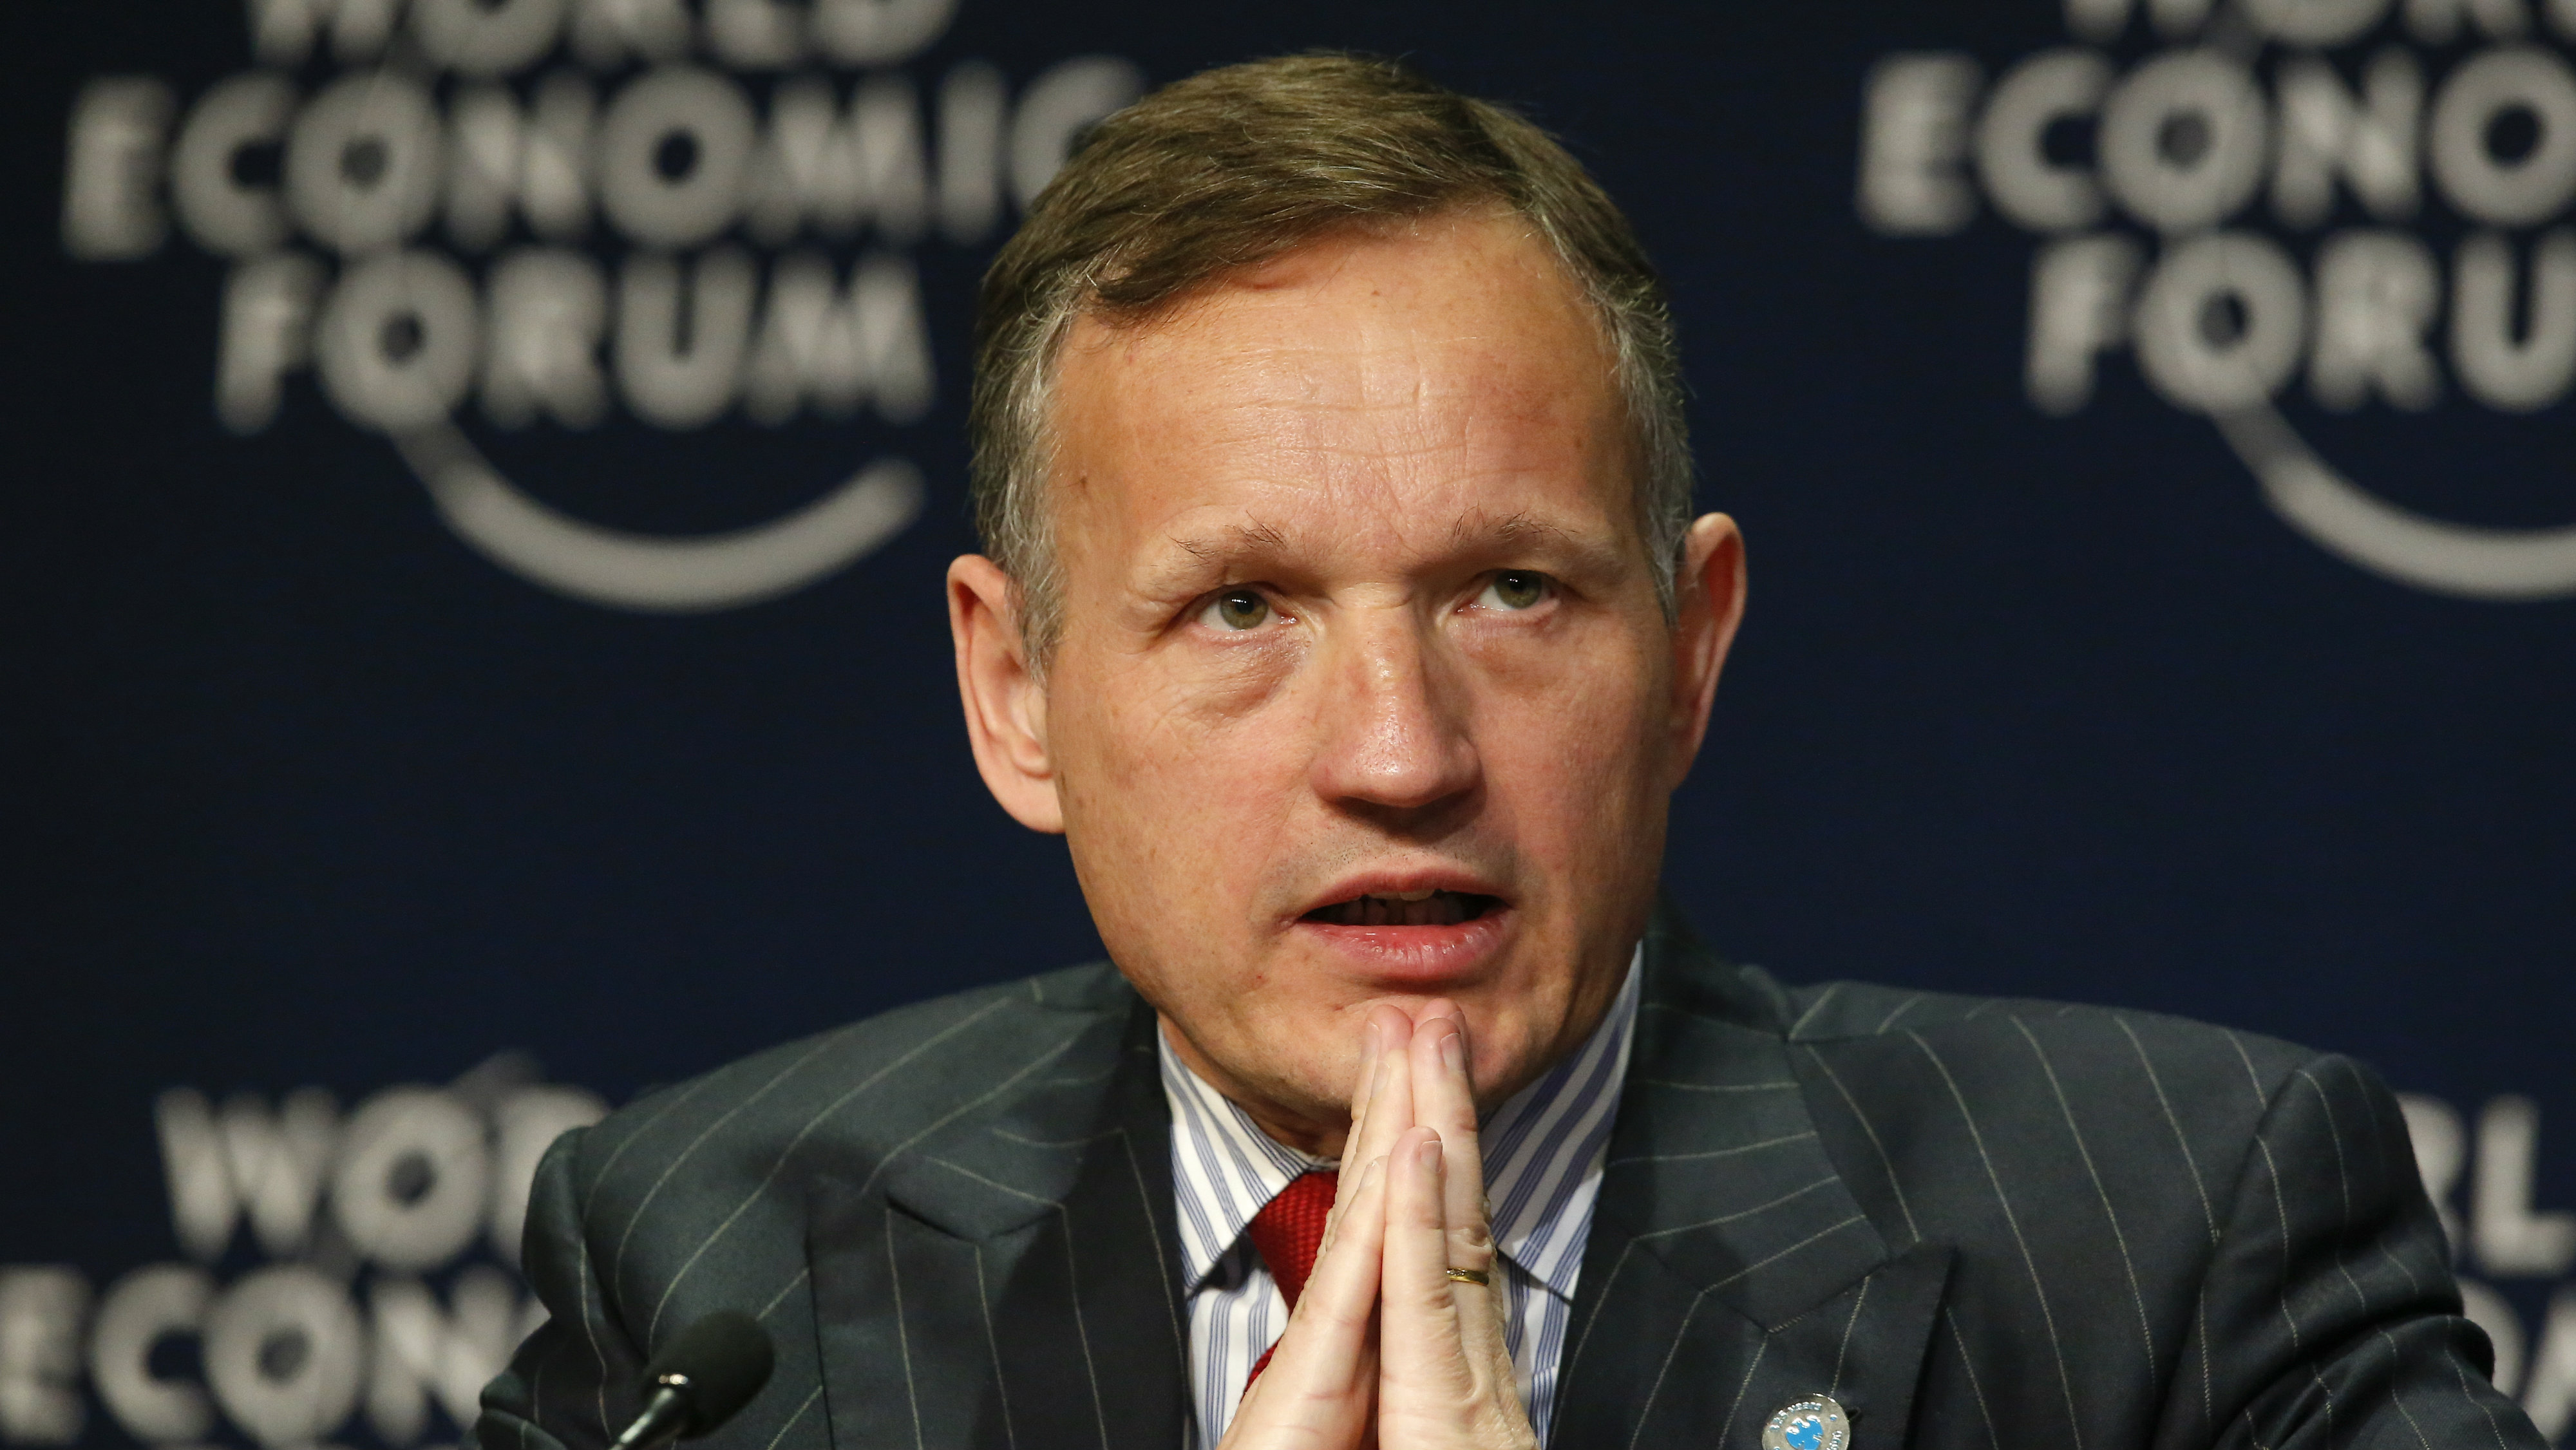 A file picture dated 05 June 2015 shows Antony Jenkins, Group Chief Executive, Barclays, United Kingdom, during the World Economic Forum on Africa at the Cape Town International Convention Centre, South Africa. According to the bank's press release on 08 July 2015, Antony Jenkins will step down as the Group Chief Executive later this month, it also states that the bank's 'non-executive directors had decided that 'new leadership is required to accelerate the pace of execution going forward'.